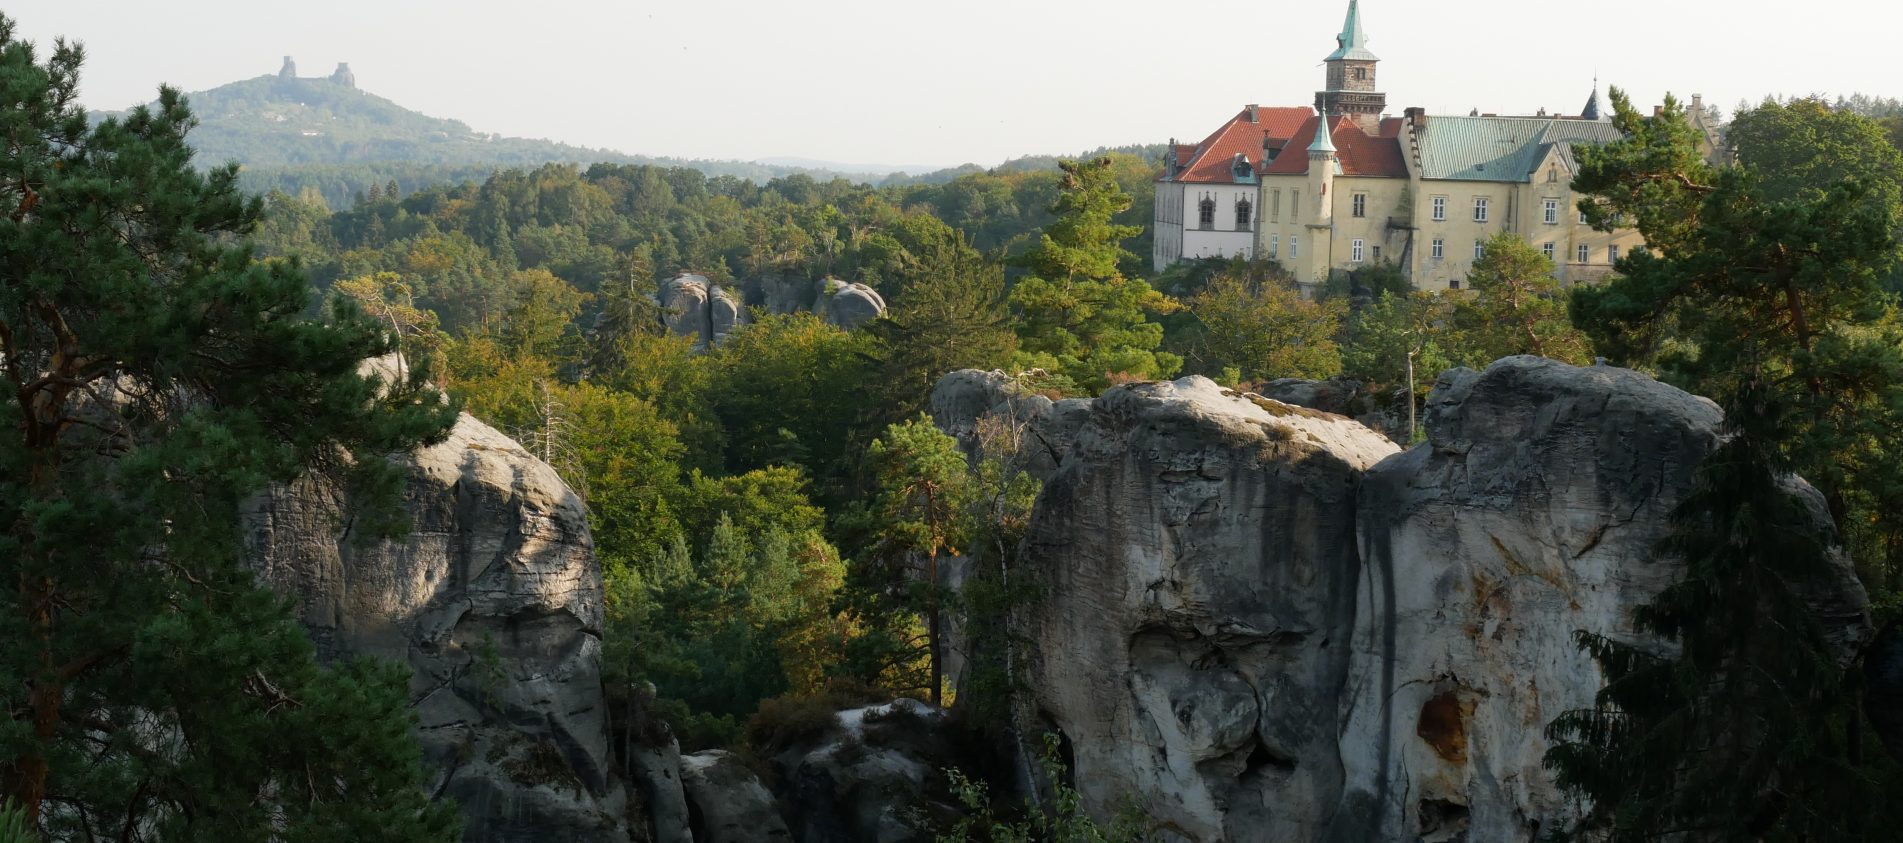 Walking through the Bohemian Paradise - ruin Trosky and castle Hruba Skala